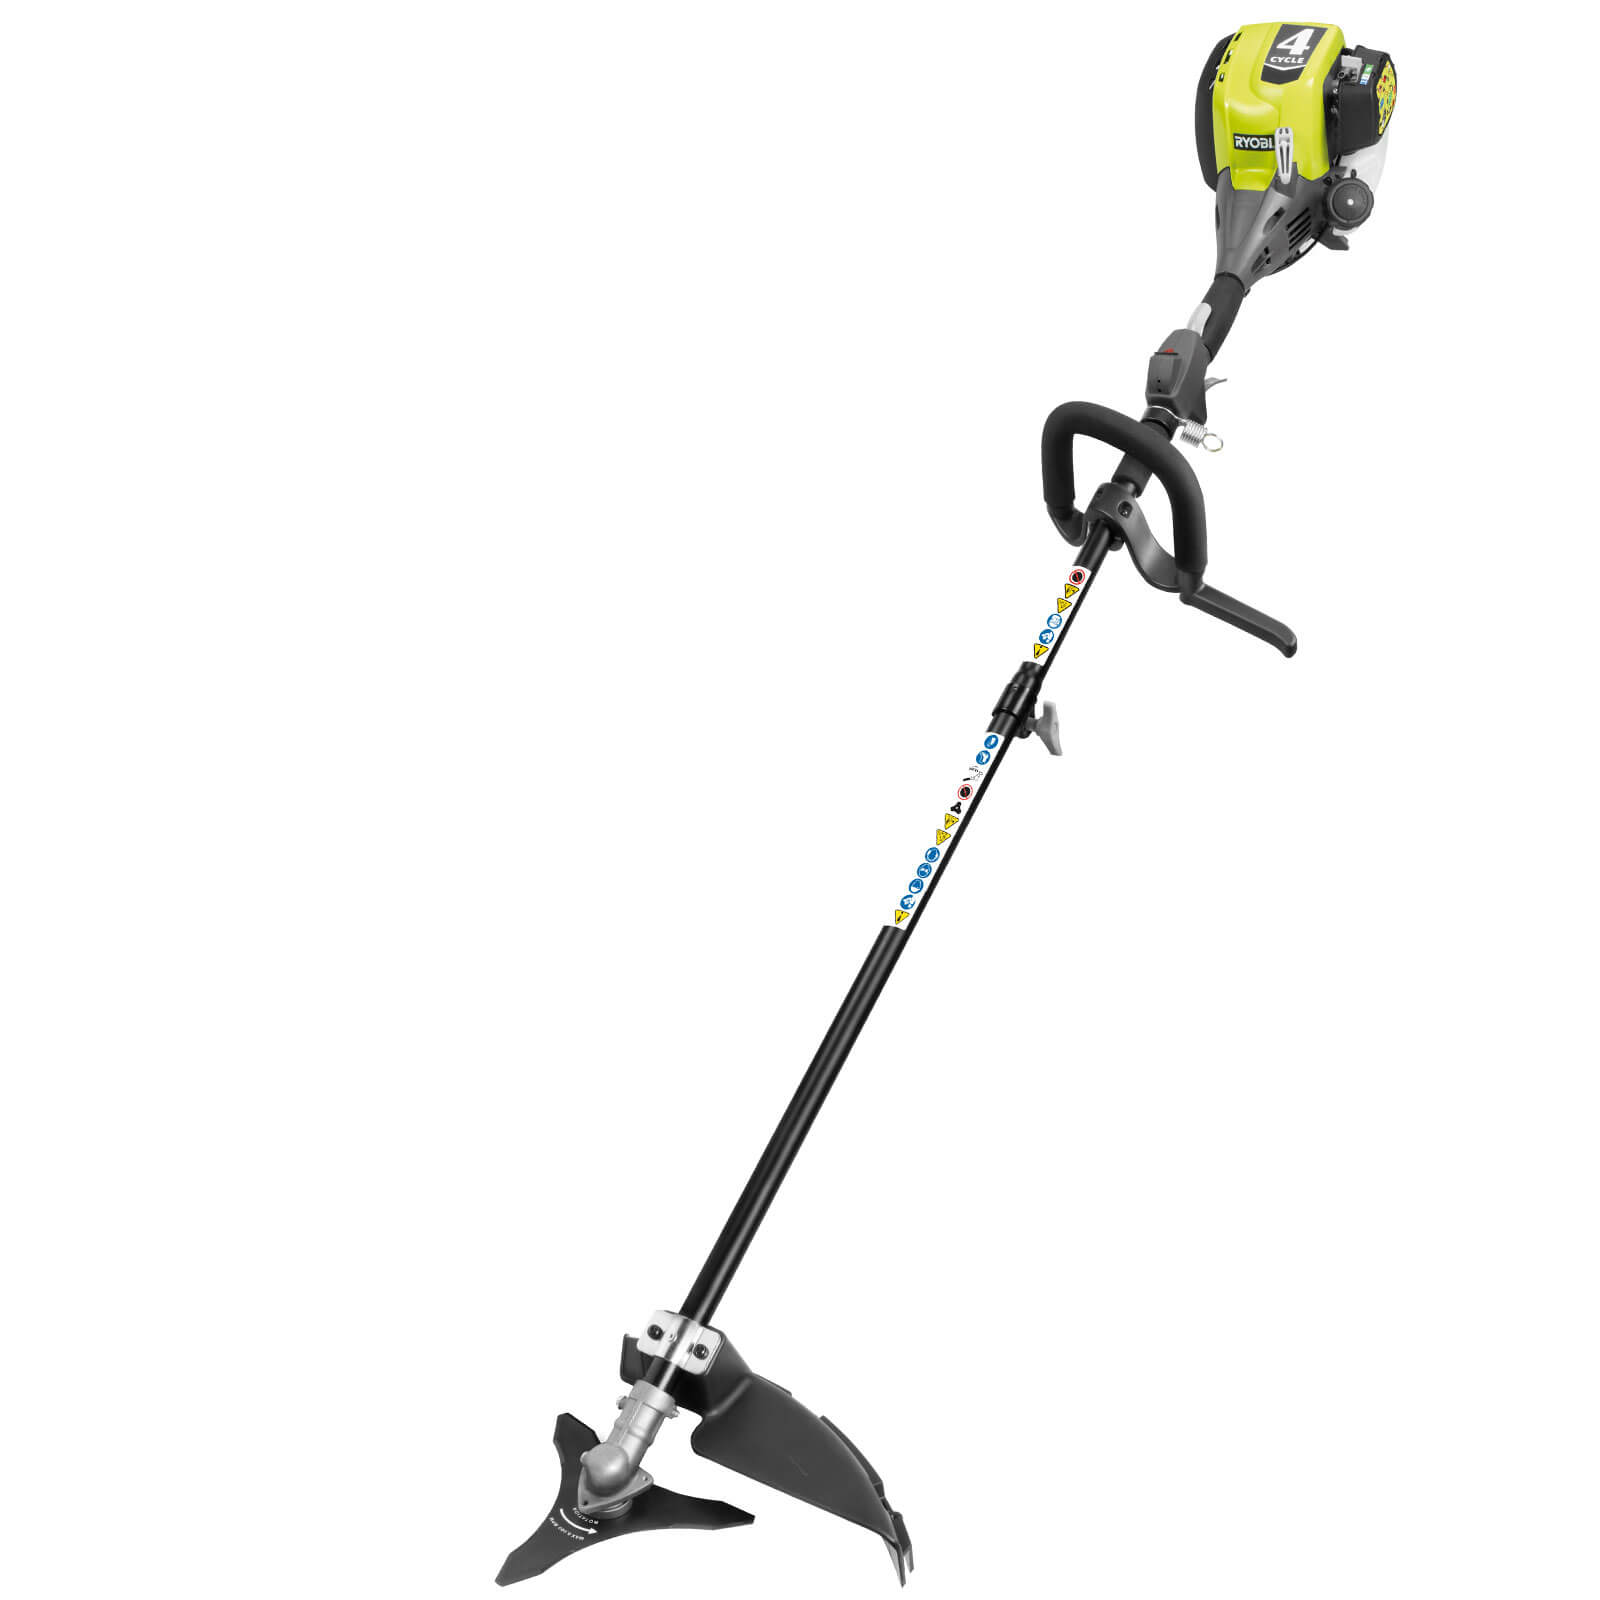 Ryobi RBC30SESB Petrol Brush Cutter 460mm Cut Width with 30cc Start Easy 2 Stroke Engine is Expandit Compatible